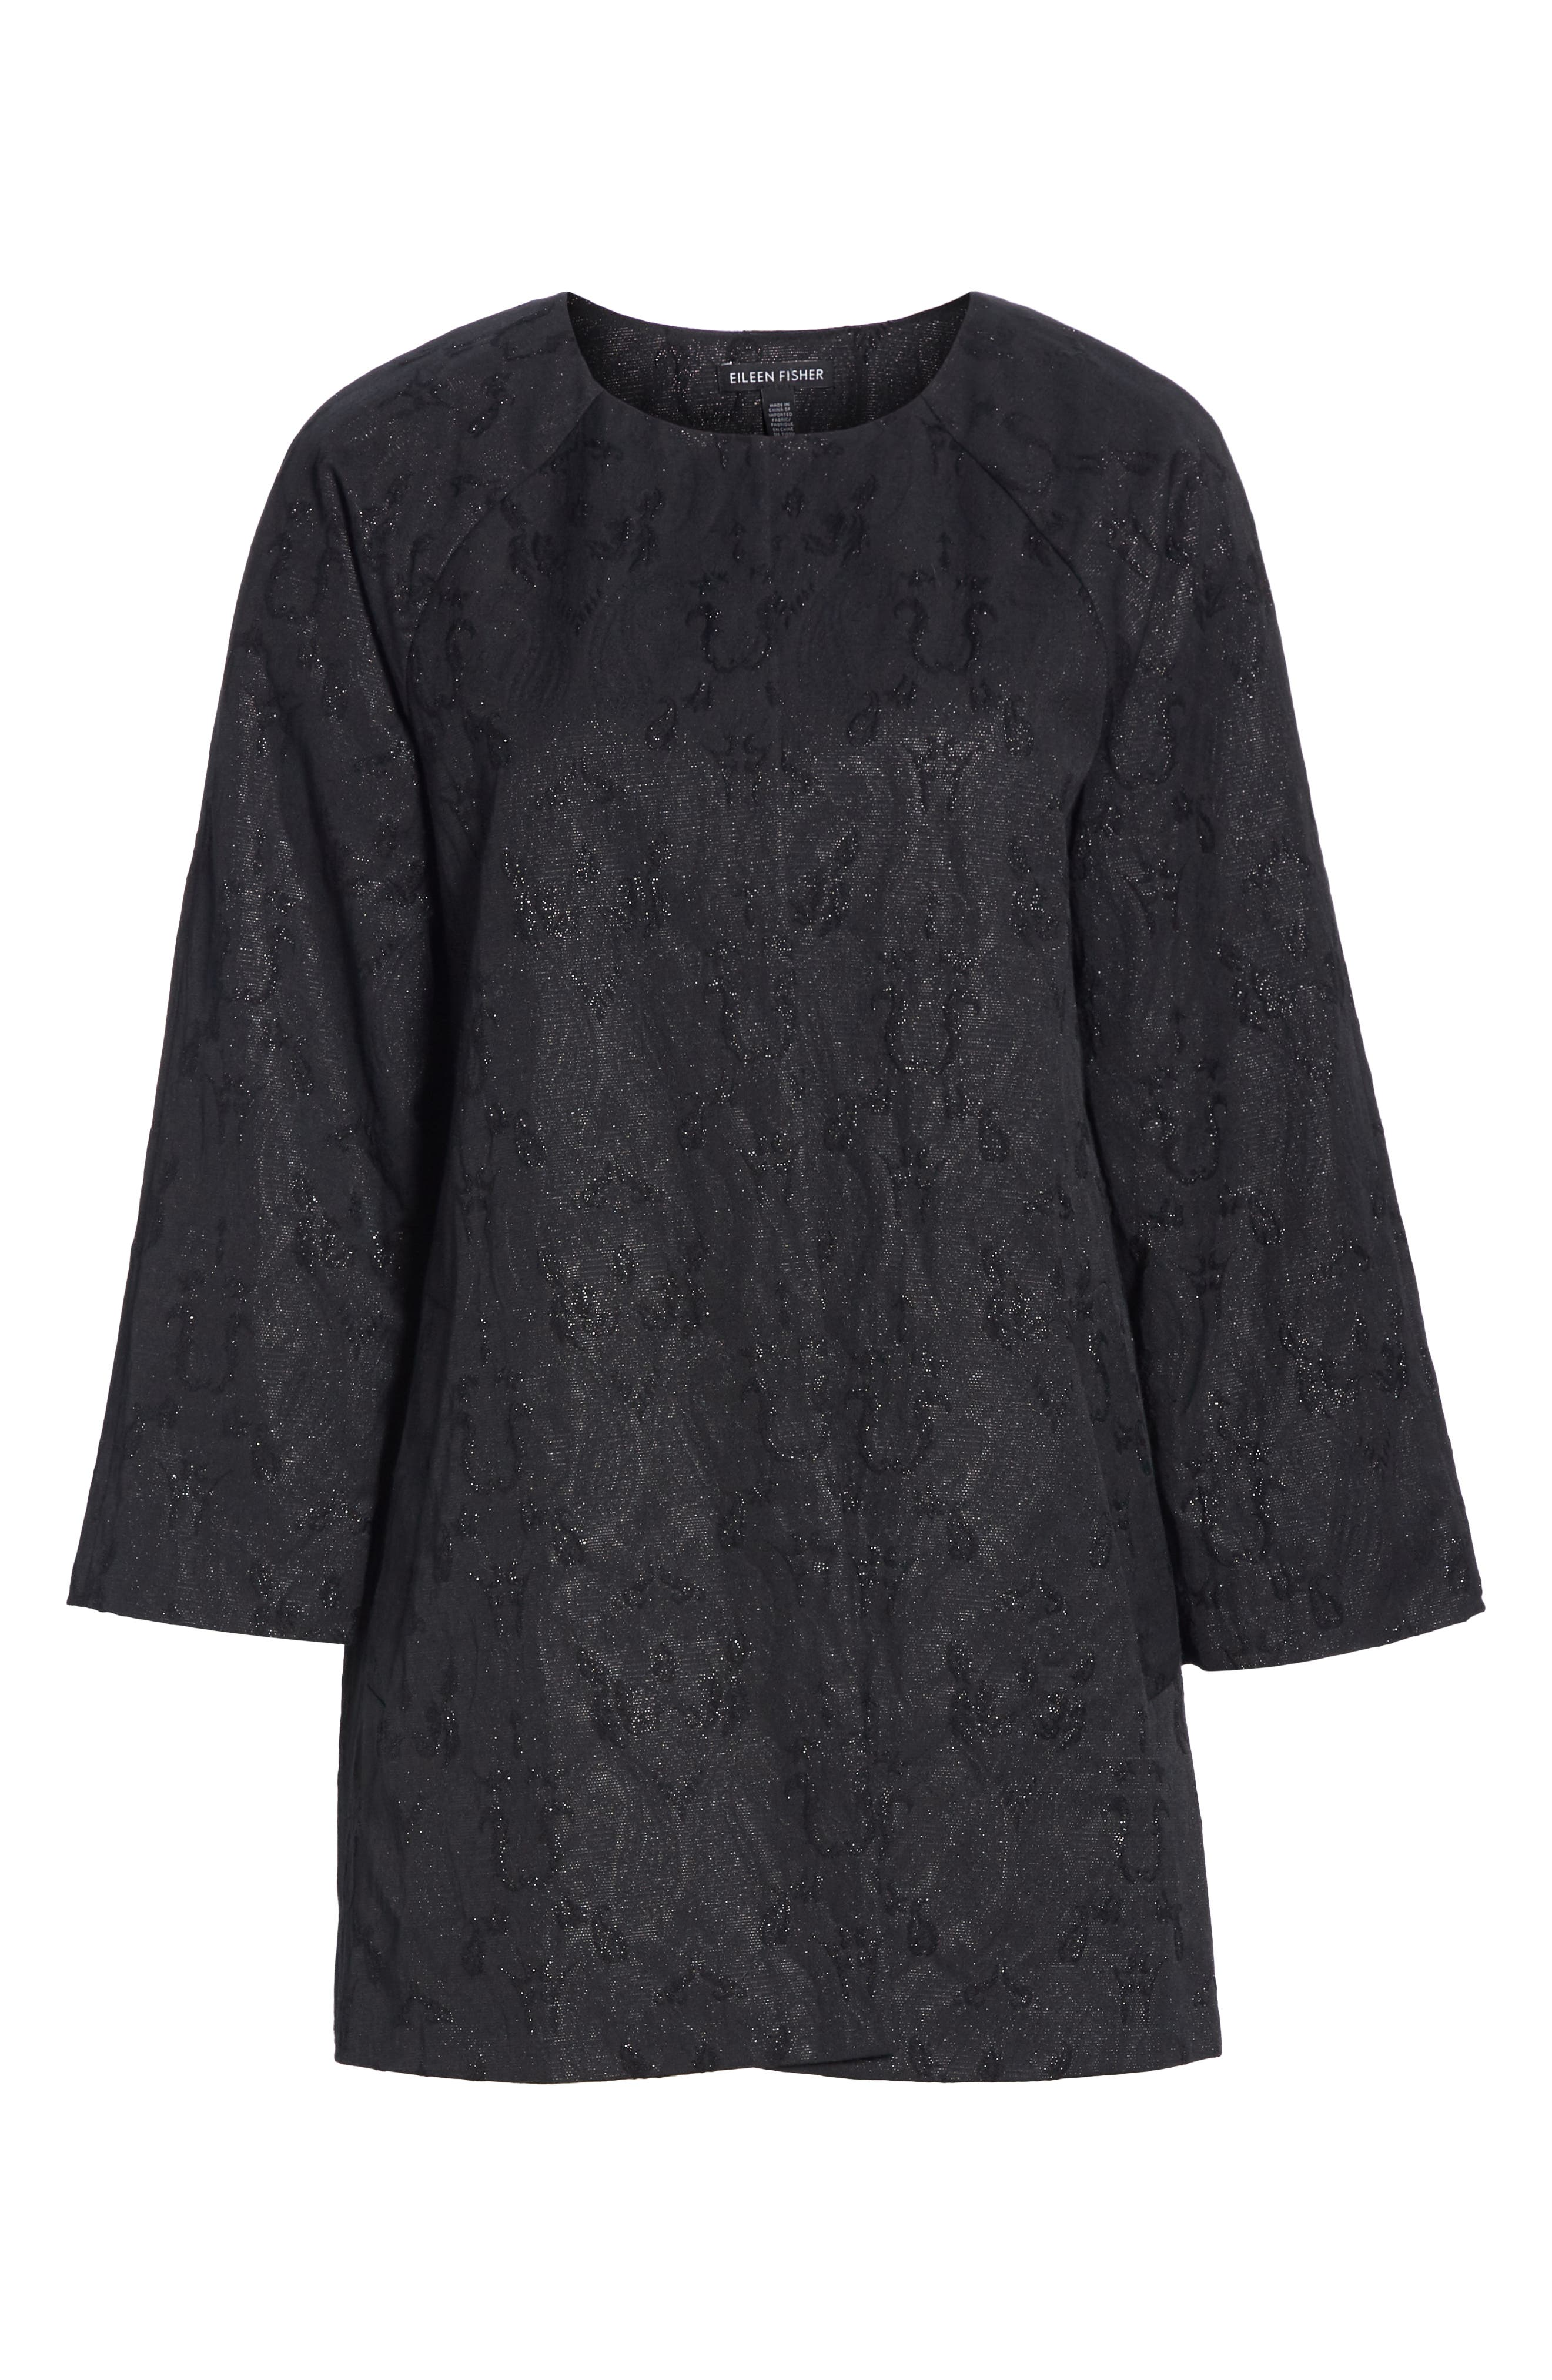 EILEEN FISHER, Metallic Jacquard Collarless Jacket, Alternate thumbnail 6, color, BLACK